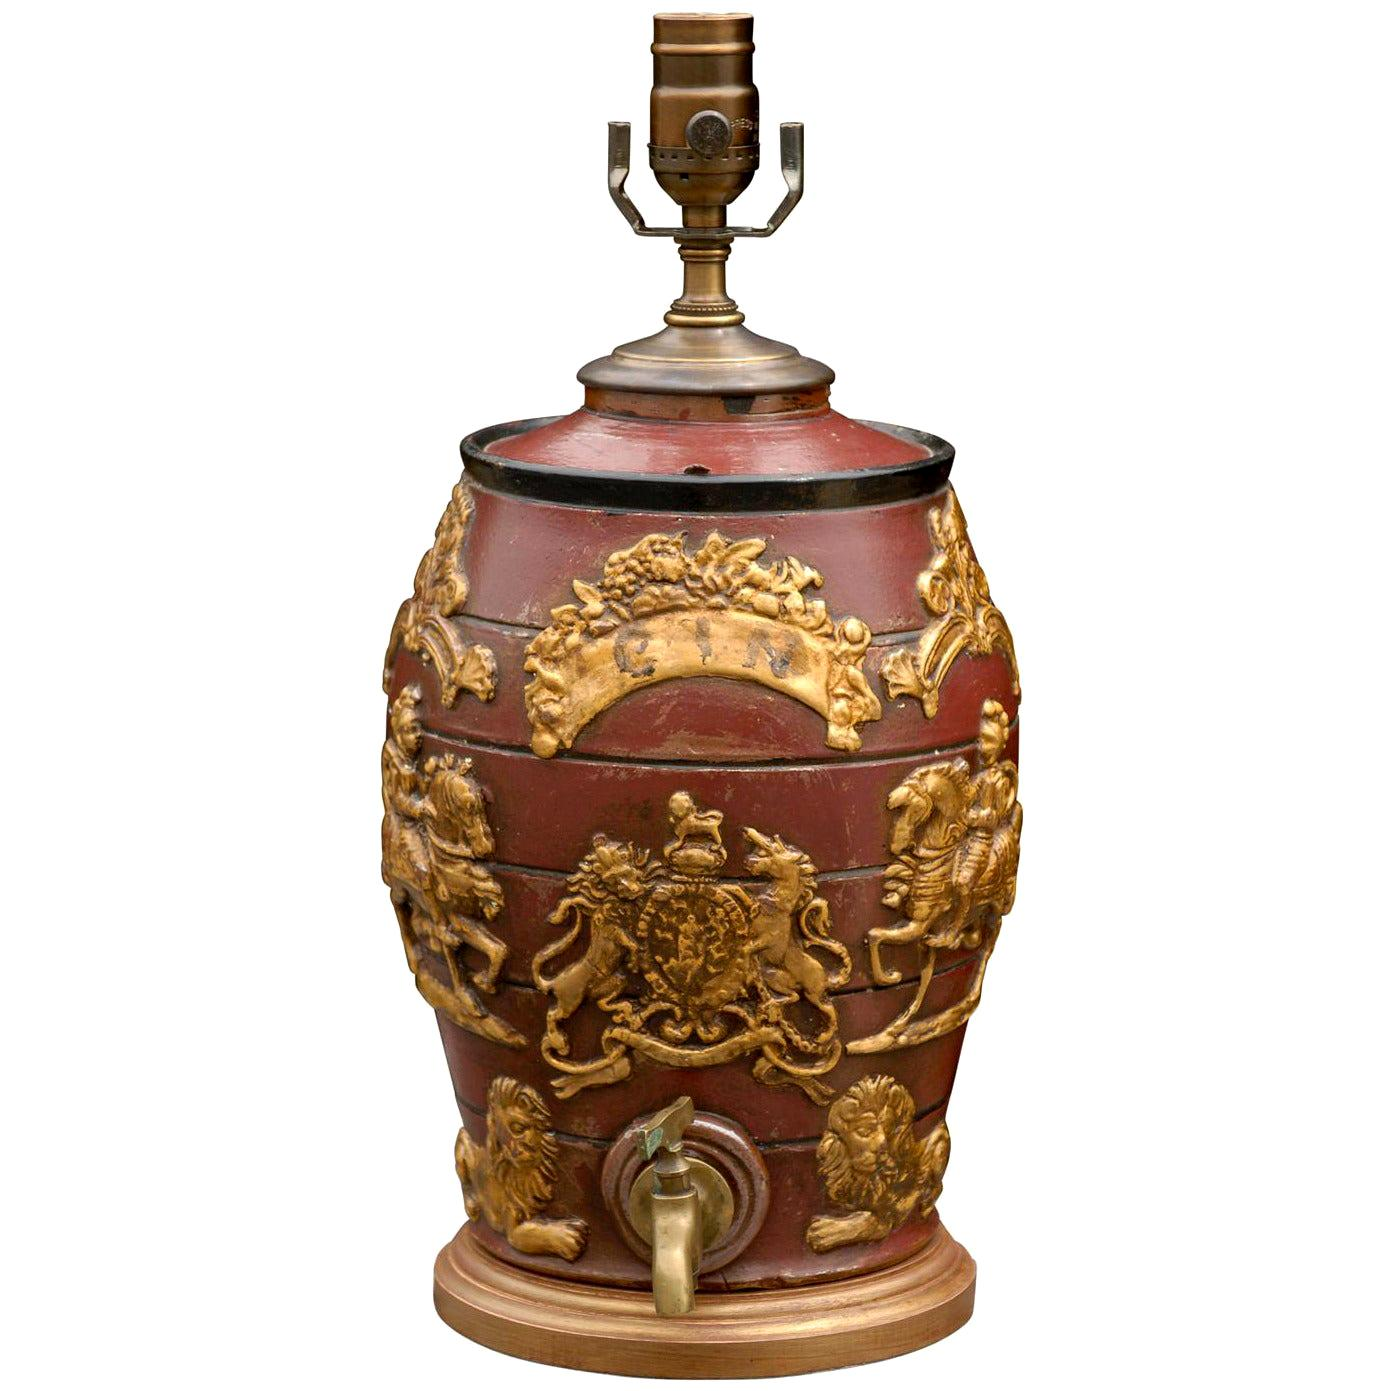 English 19th Century Red Spirit Barrel with Gilt Motifs Made into a Table Lamp